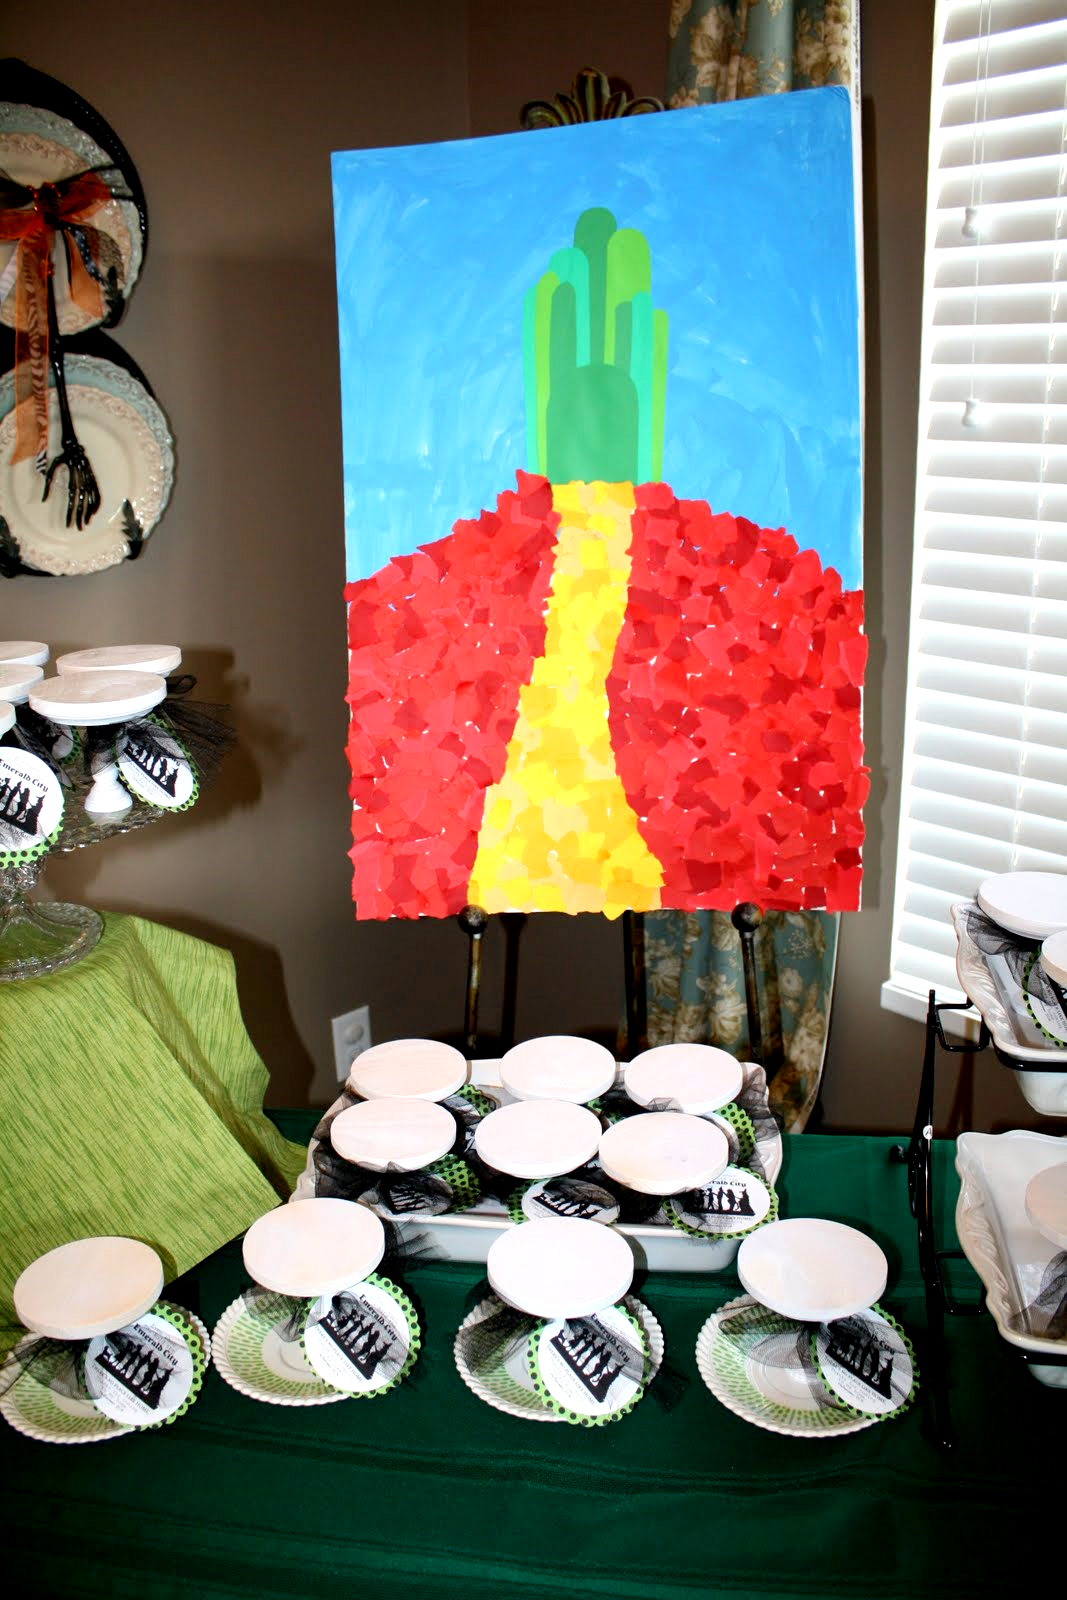 Wizard Of Oz Party Decorations Restlessrisa Wizard Of Oz Party Part 5 The Decor And Party